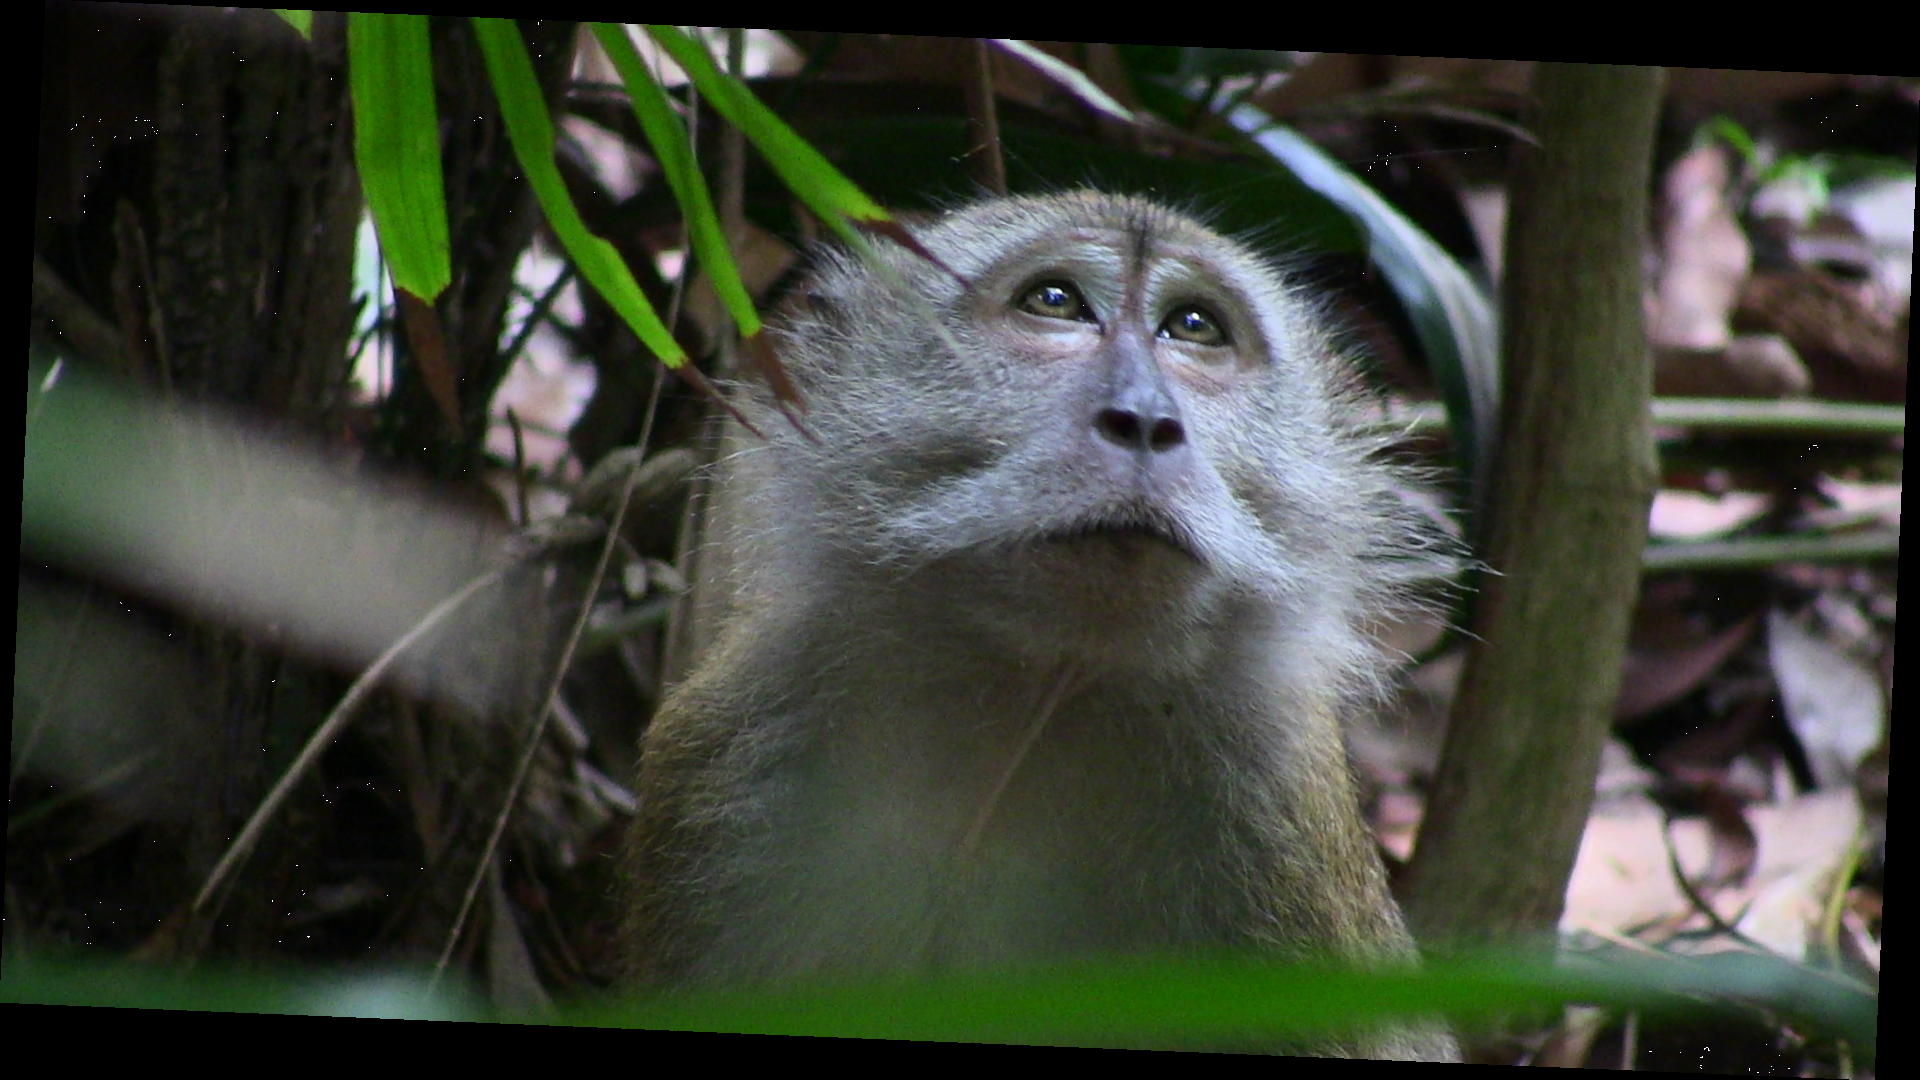 Macaques - Animal Encounters - Do's and Don'ts - Gardens